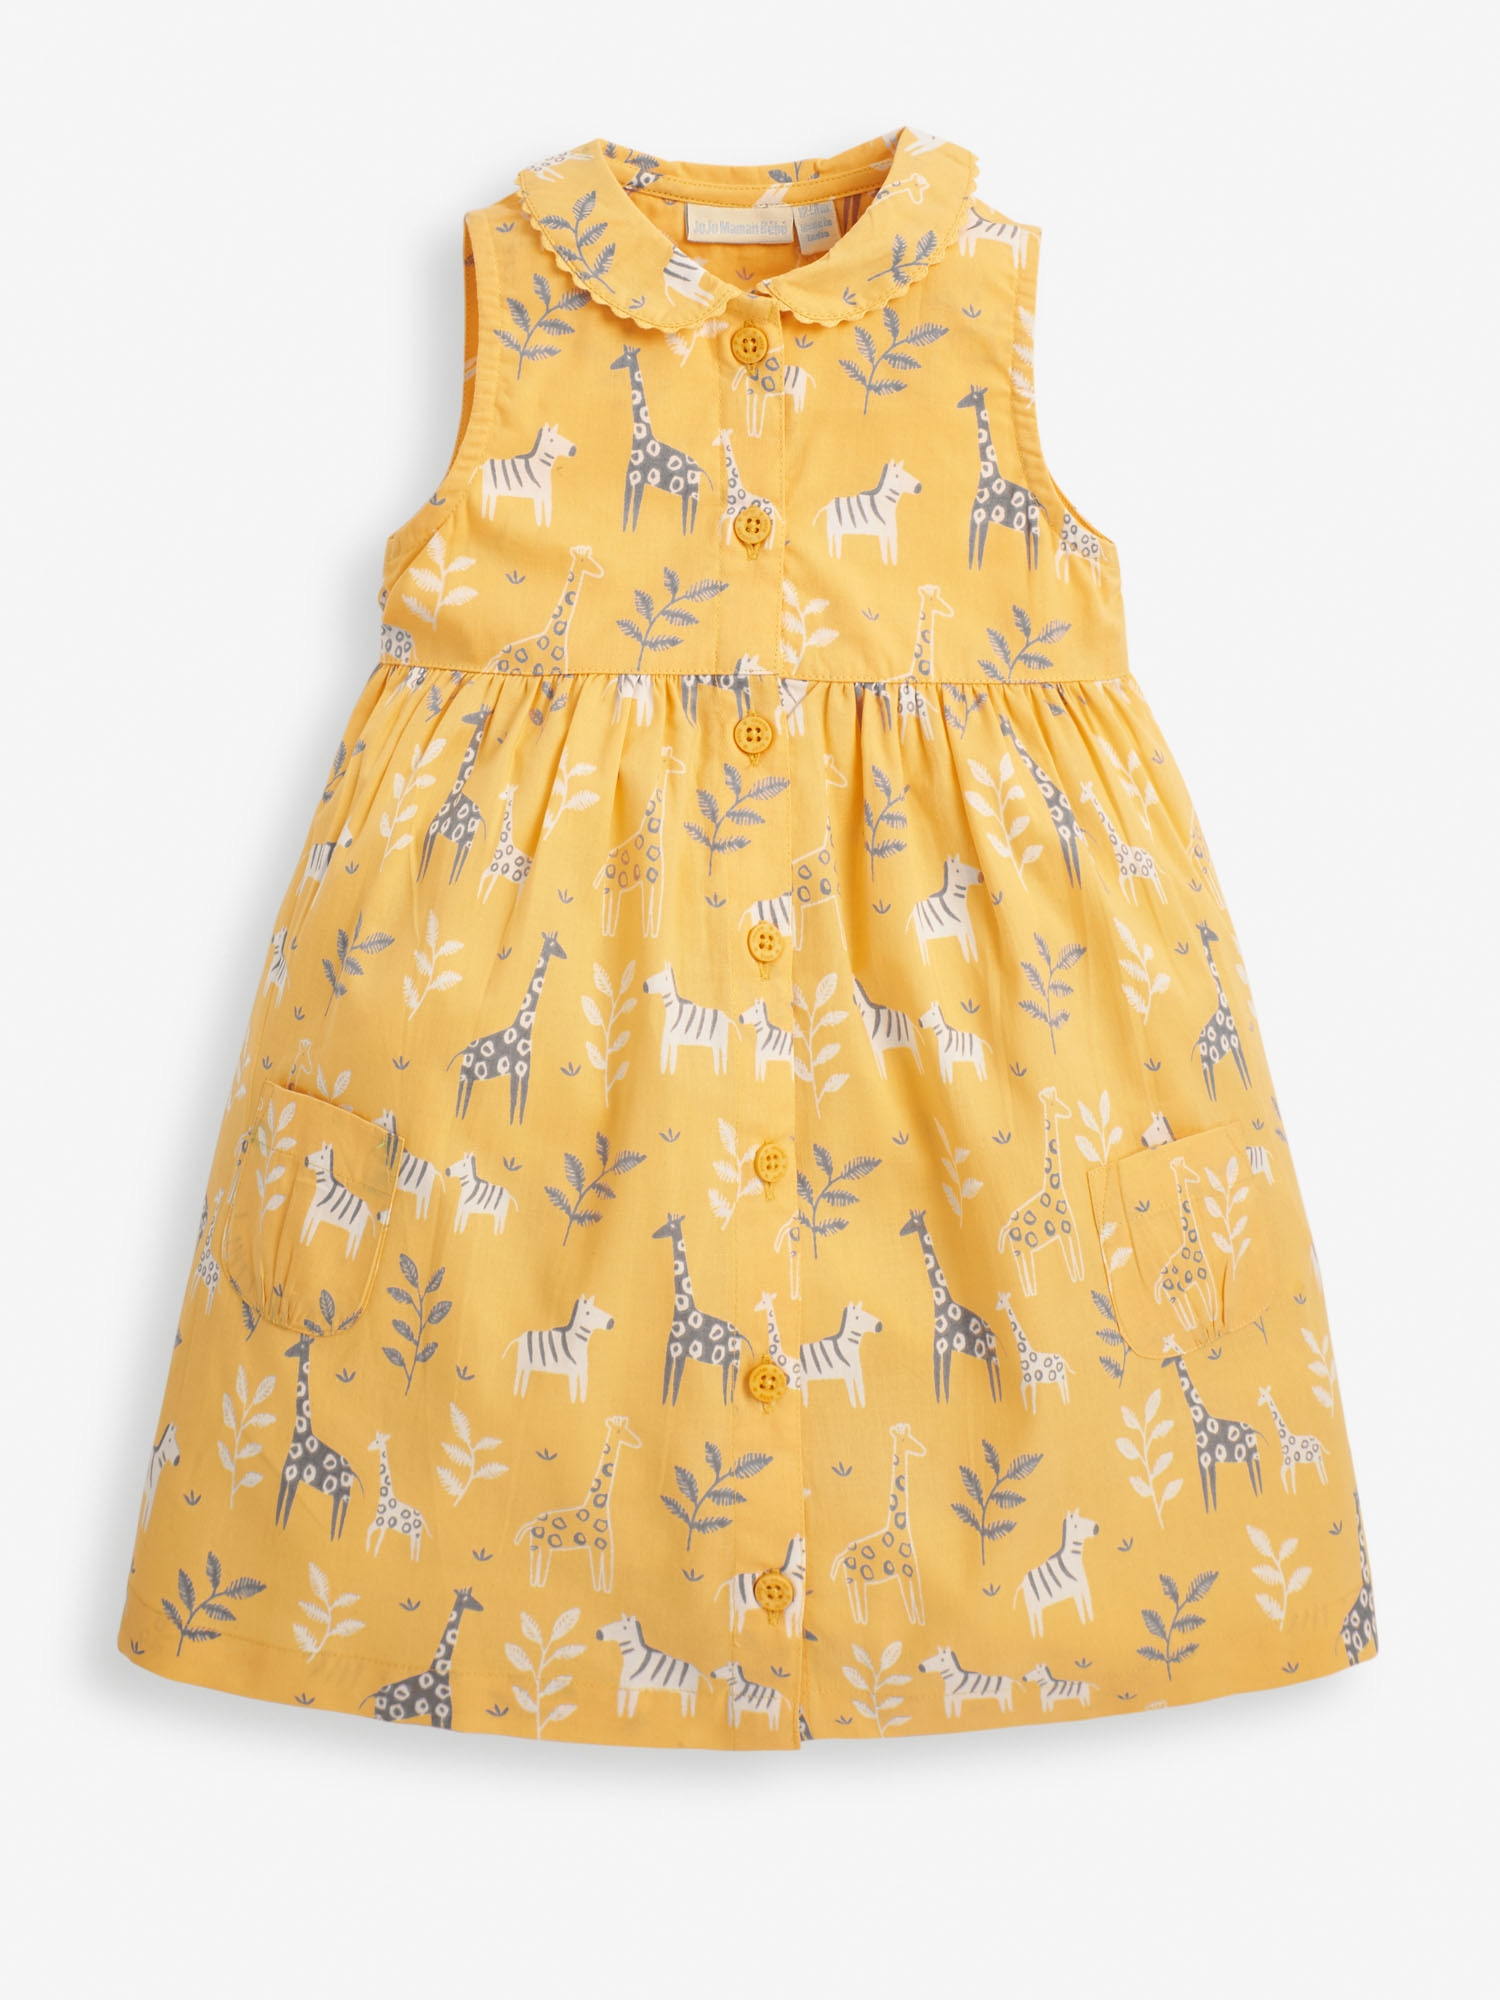 Girls' Mustard Giraffe & Zebra Print Shirt Dress